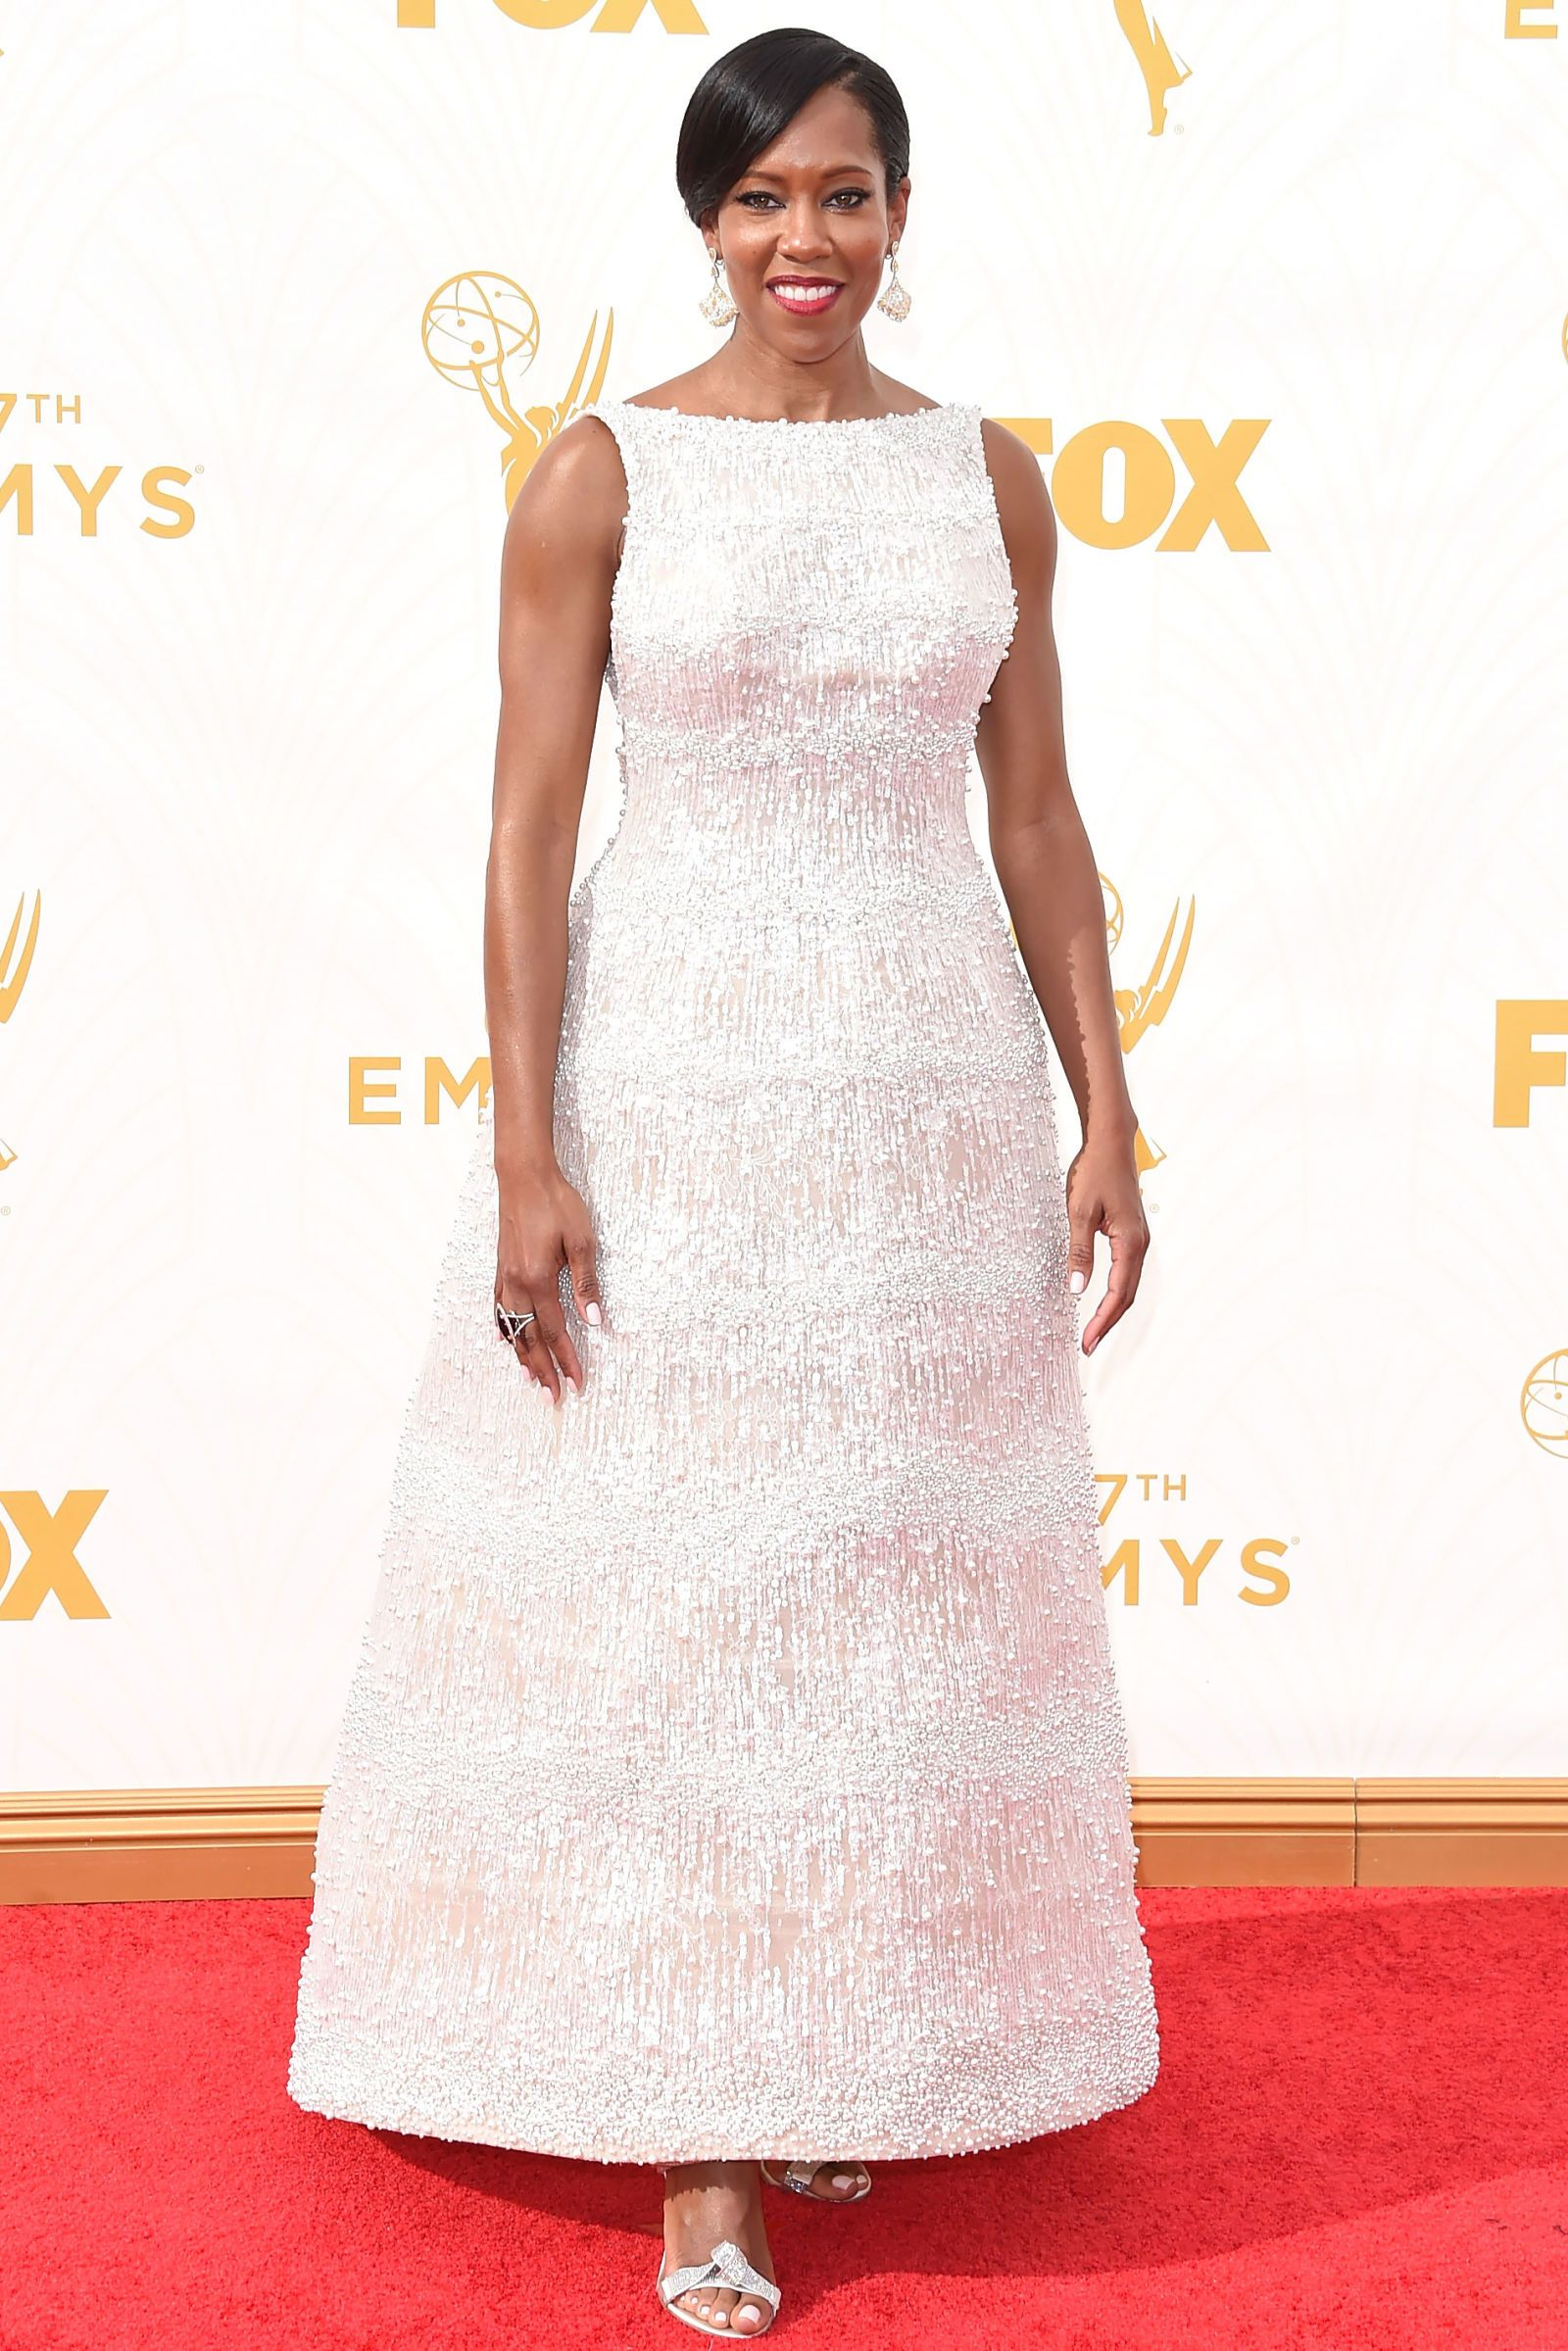 Regina George wears a gorgeous white A-line dress to the 2015 Emmys  See All the Gorgeous Looks From the 2015 Emmys  - Cosmopolitan.com